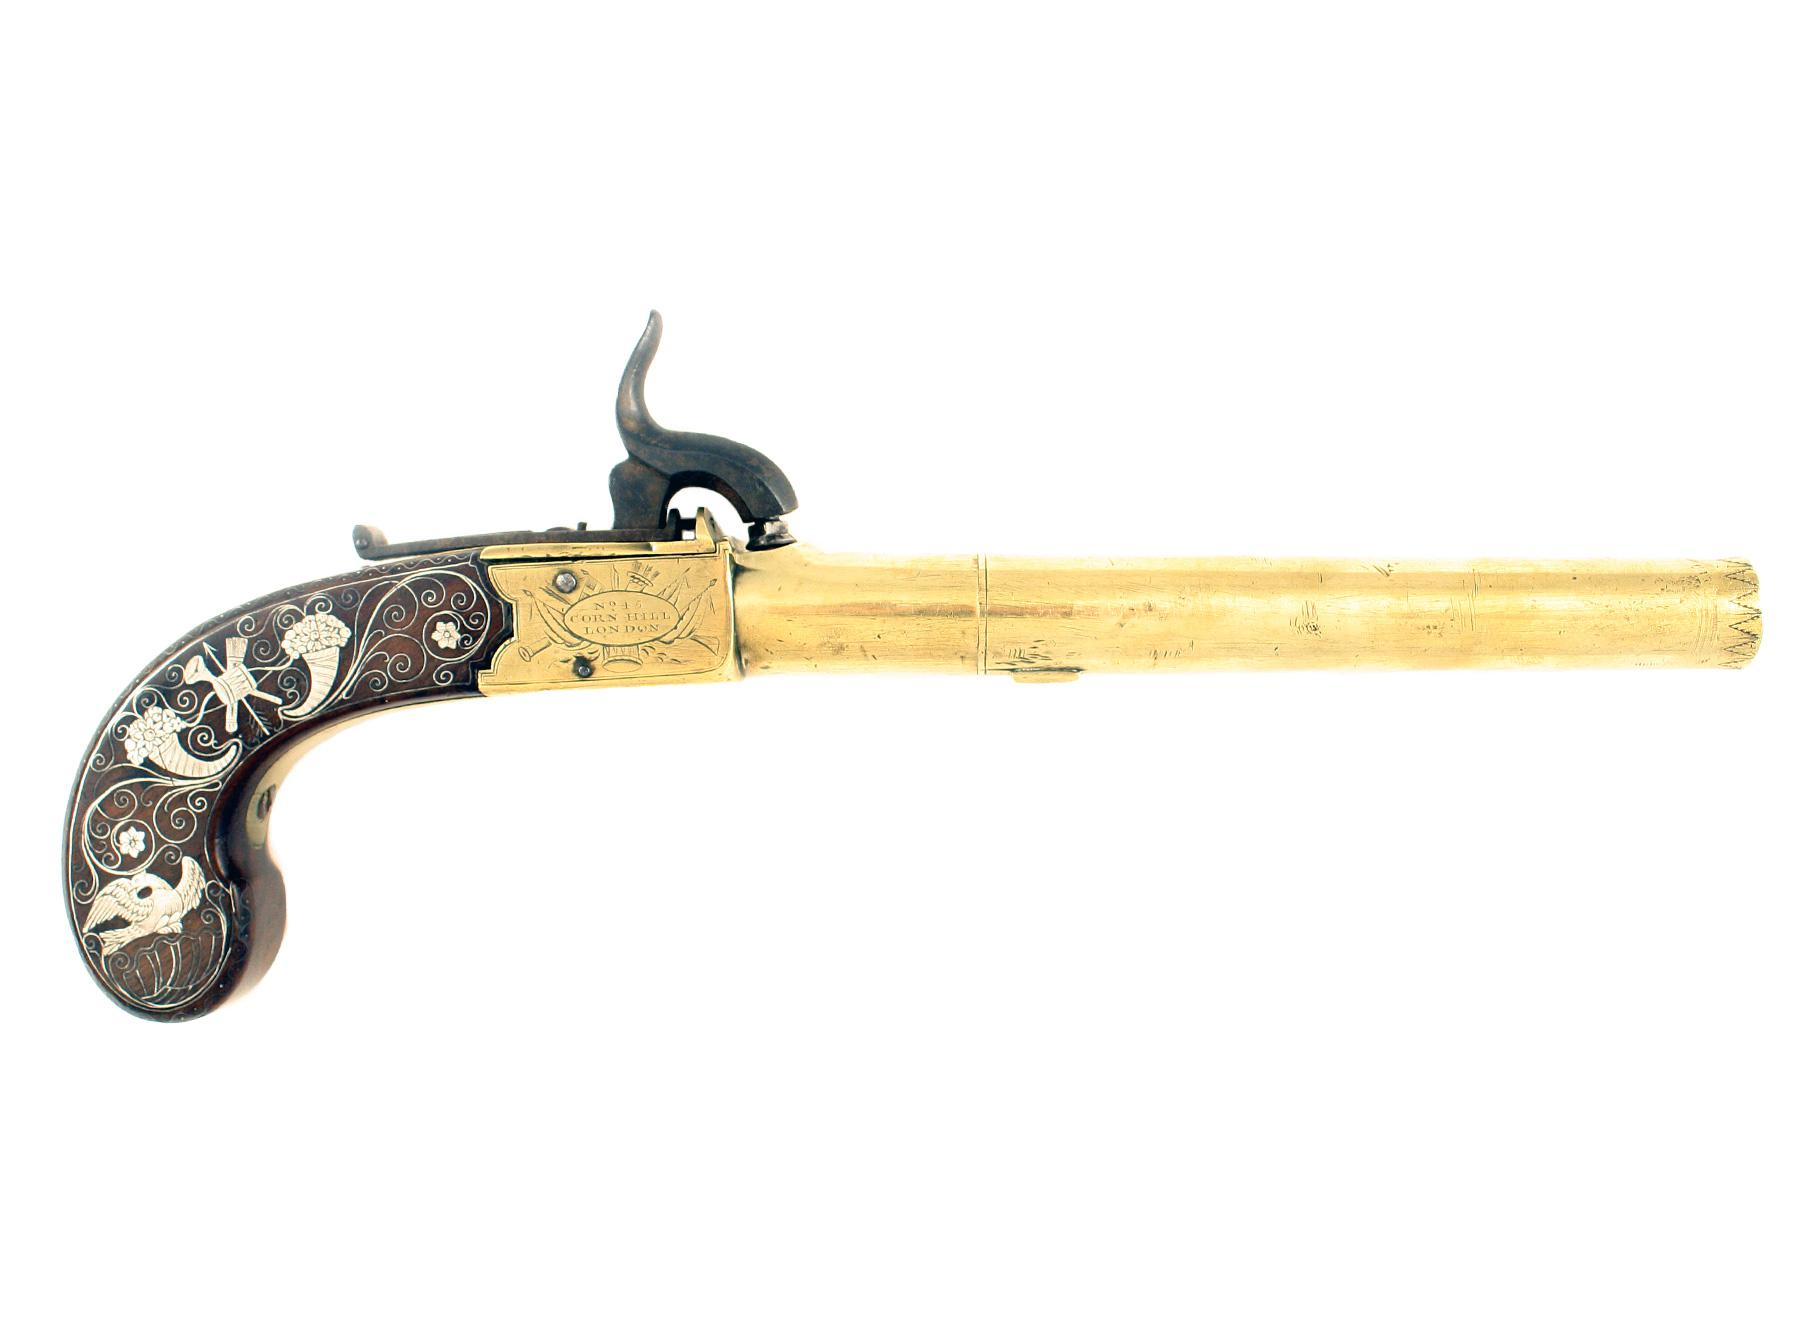 A Silver Mounted Pistol by Bond of London